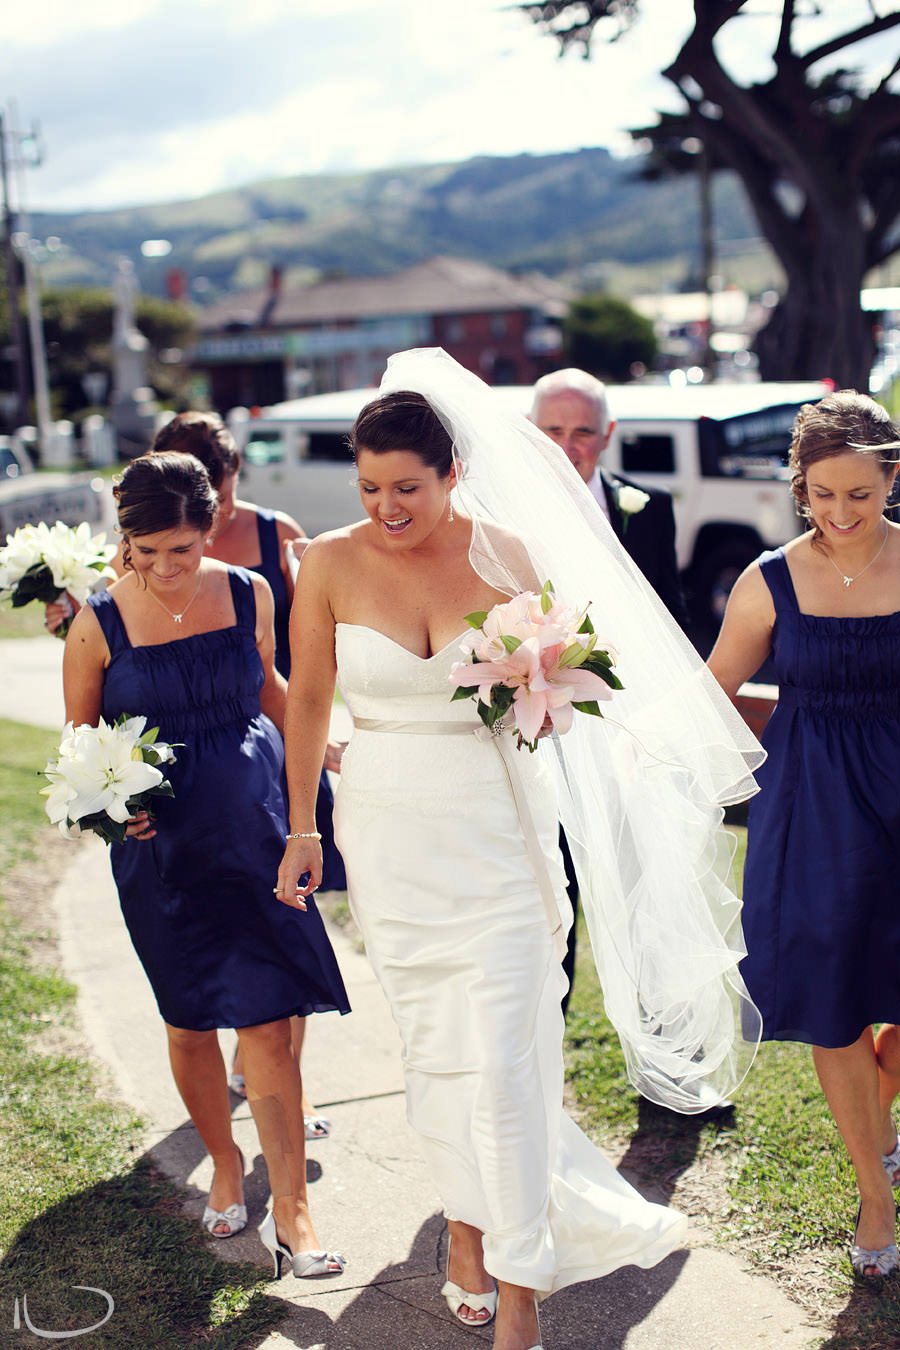 St. Aidans Church Apollo Bay Victoria Wedding Photographer: Bride walking into church with bridesmaids